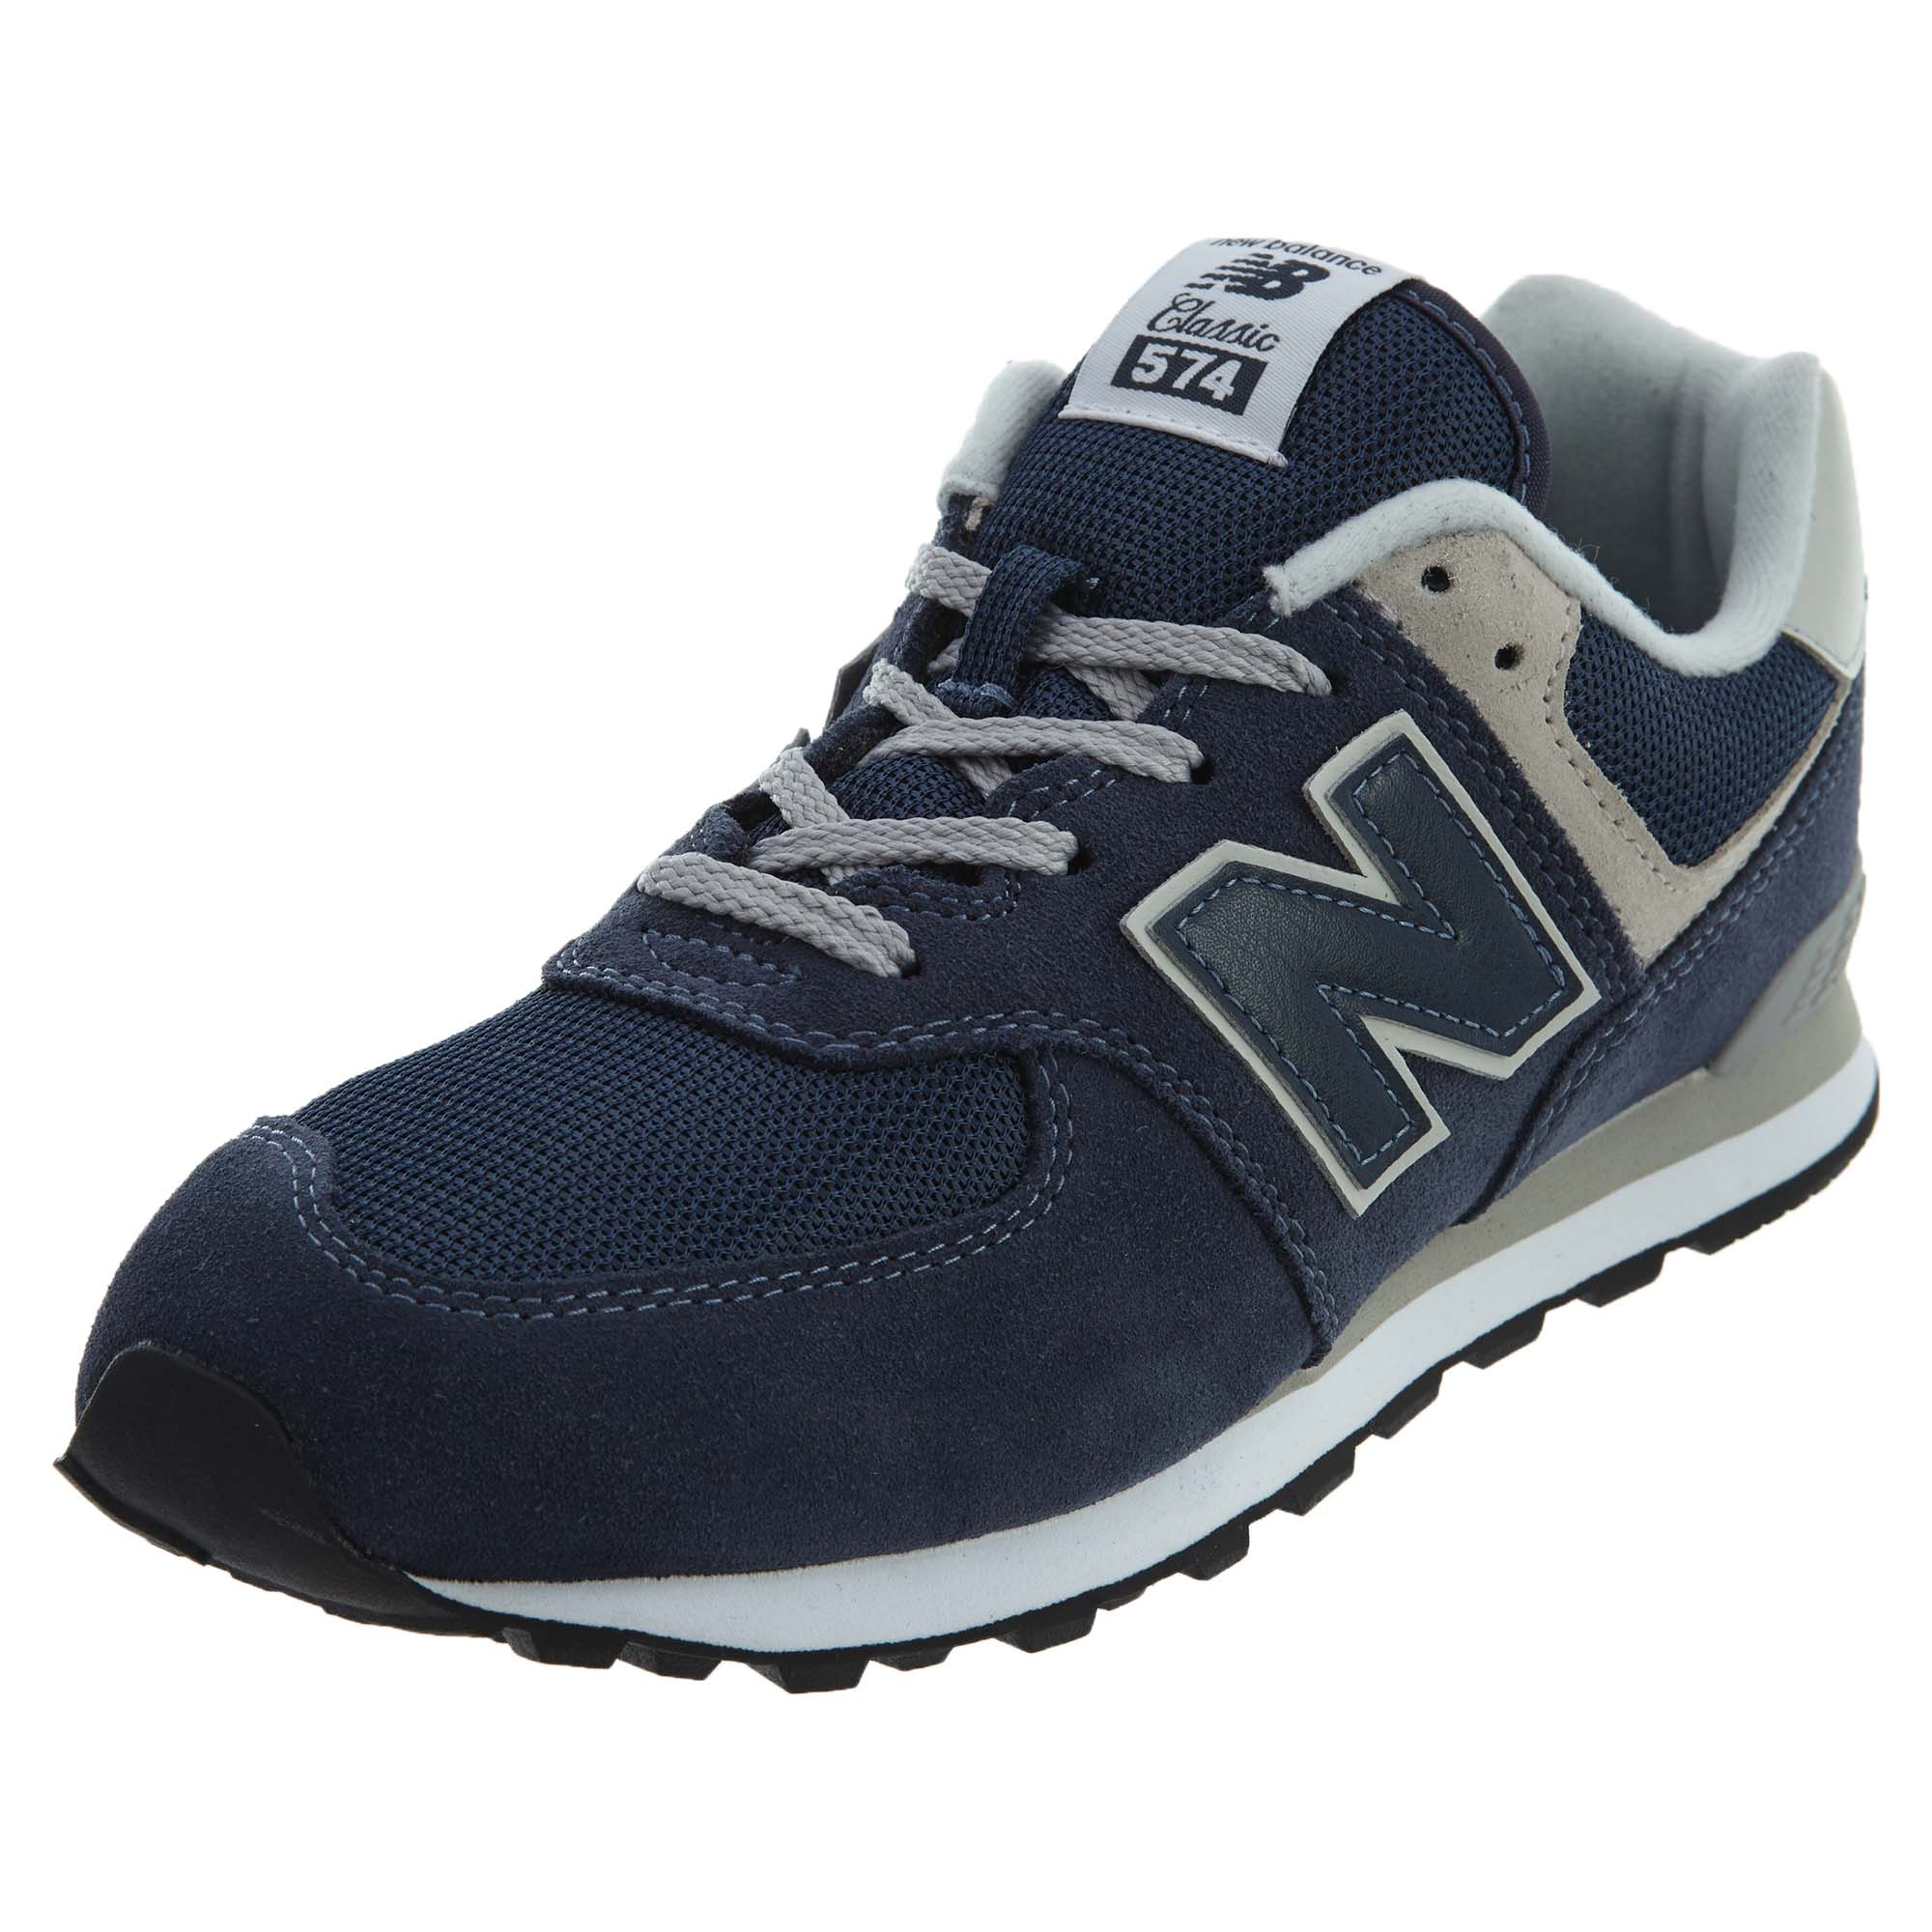 Details about New Balance Big Kids 574 Life Style Running Shoes Navy Grey  GC574-GV f67ebc690